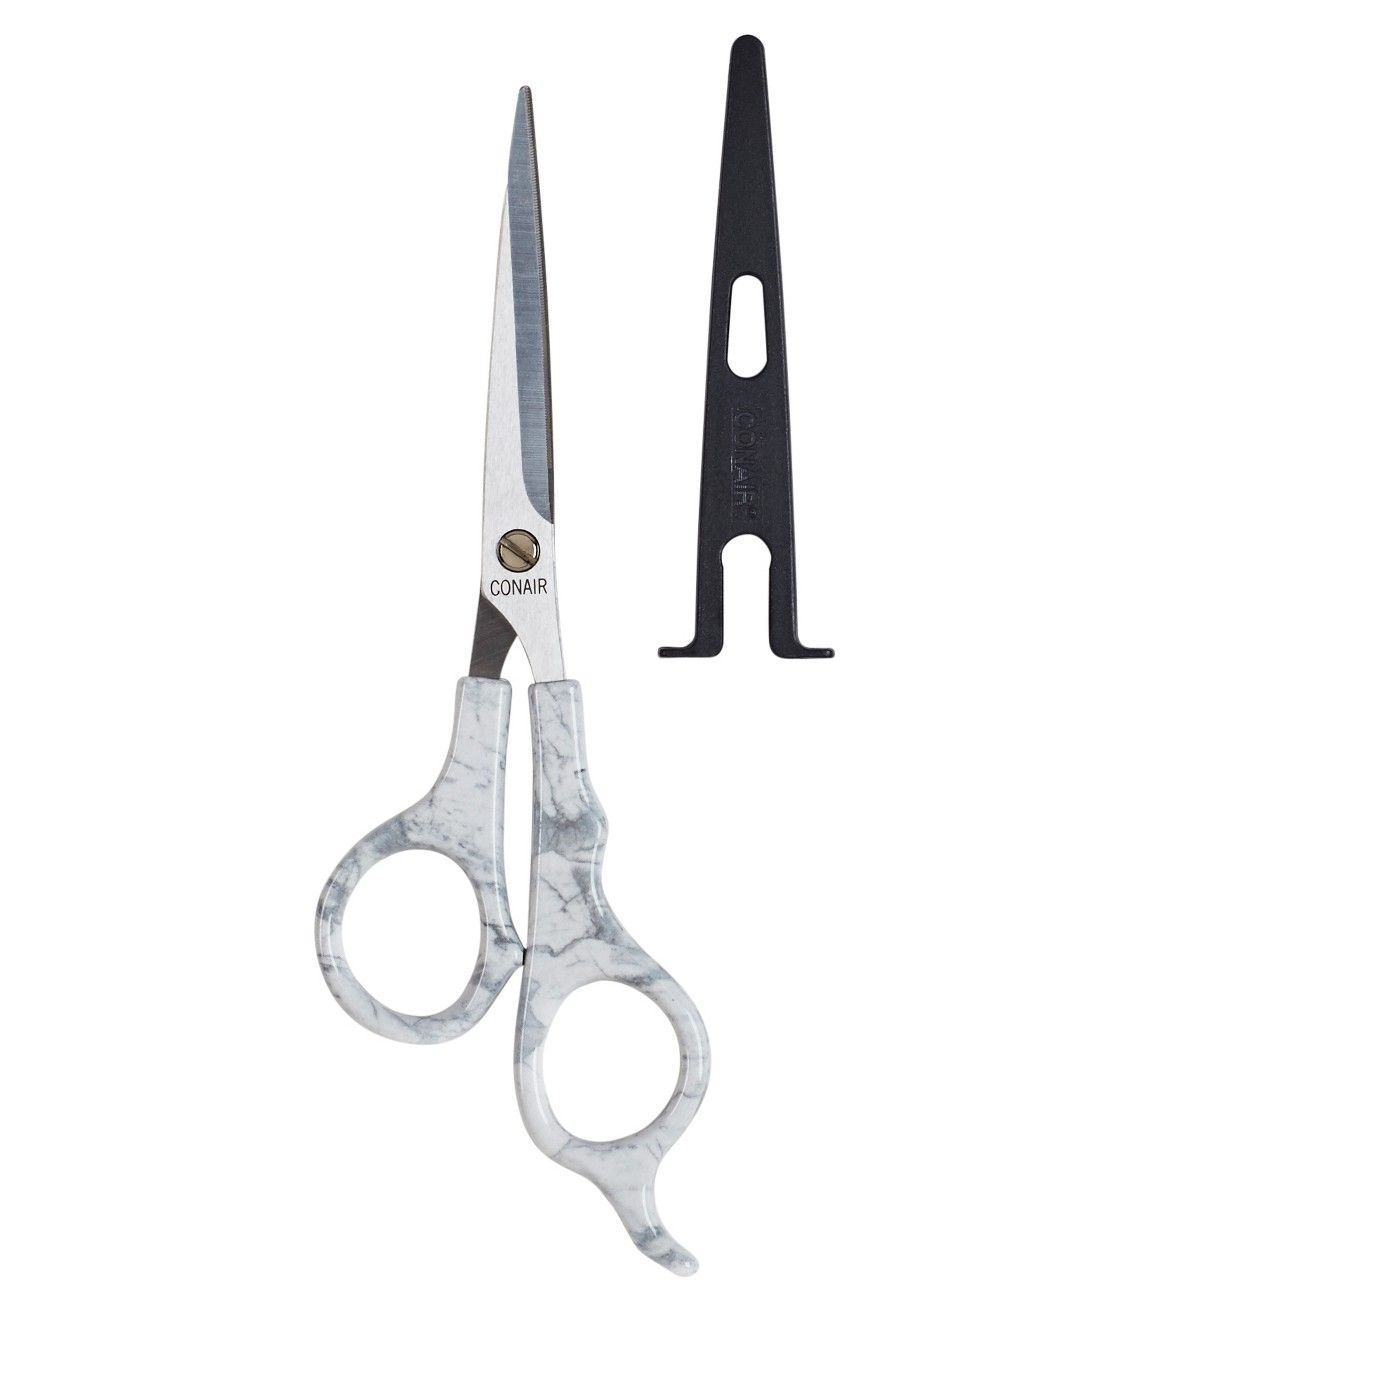 Conair Cararra Marble Shears with Safety Blade Cover - 11212 112/12